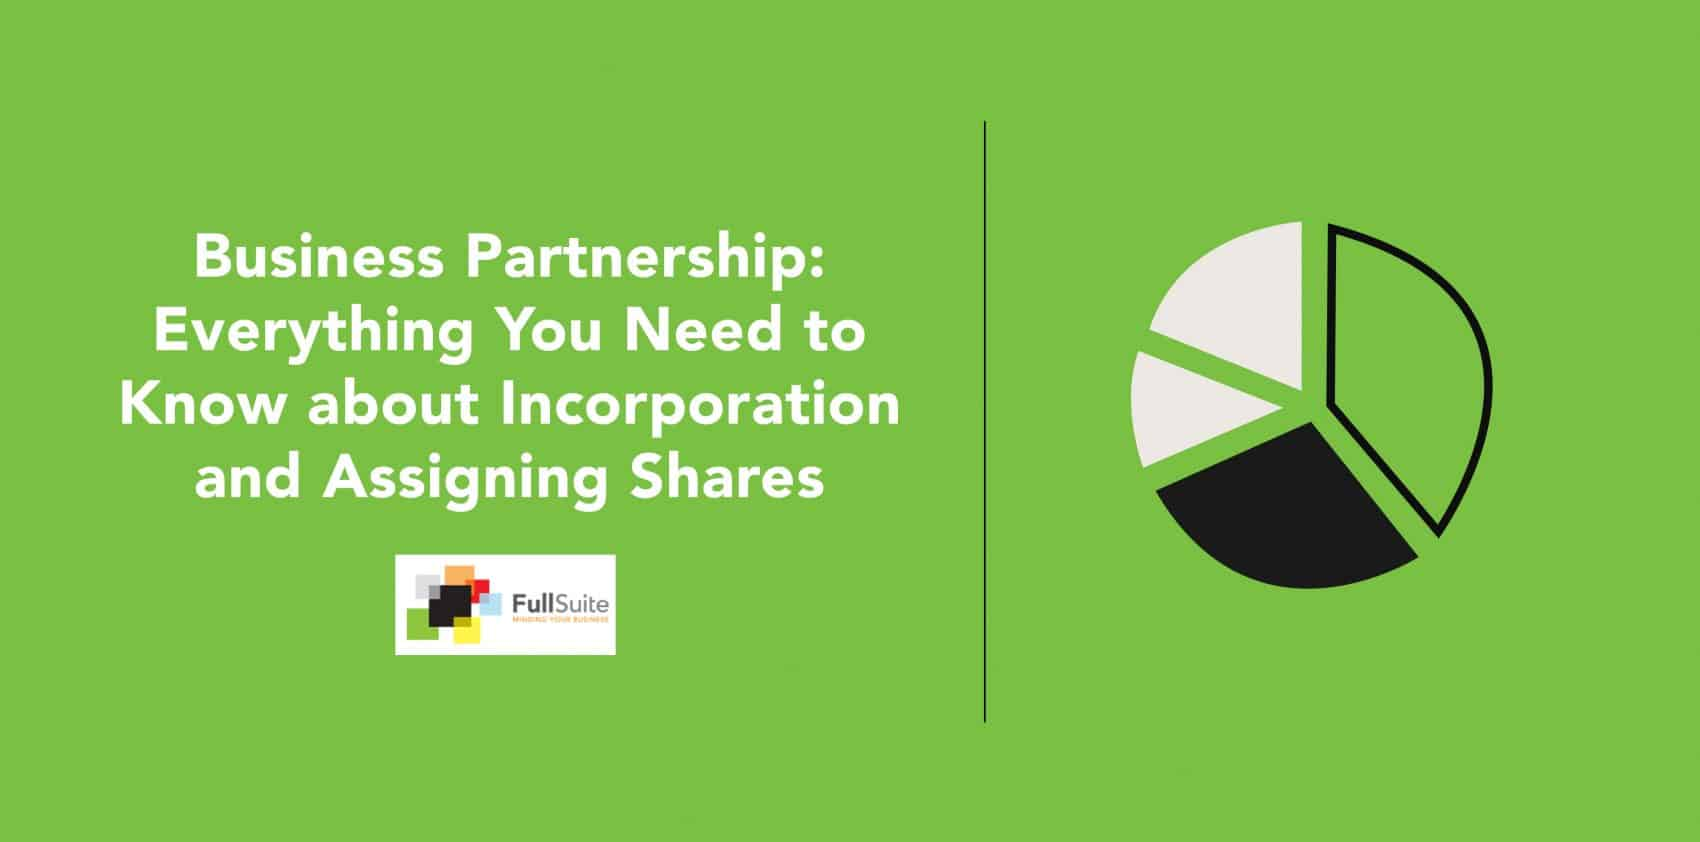 Business Partnership: Everything You Need to Know about Incorporation and Assigning Shares